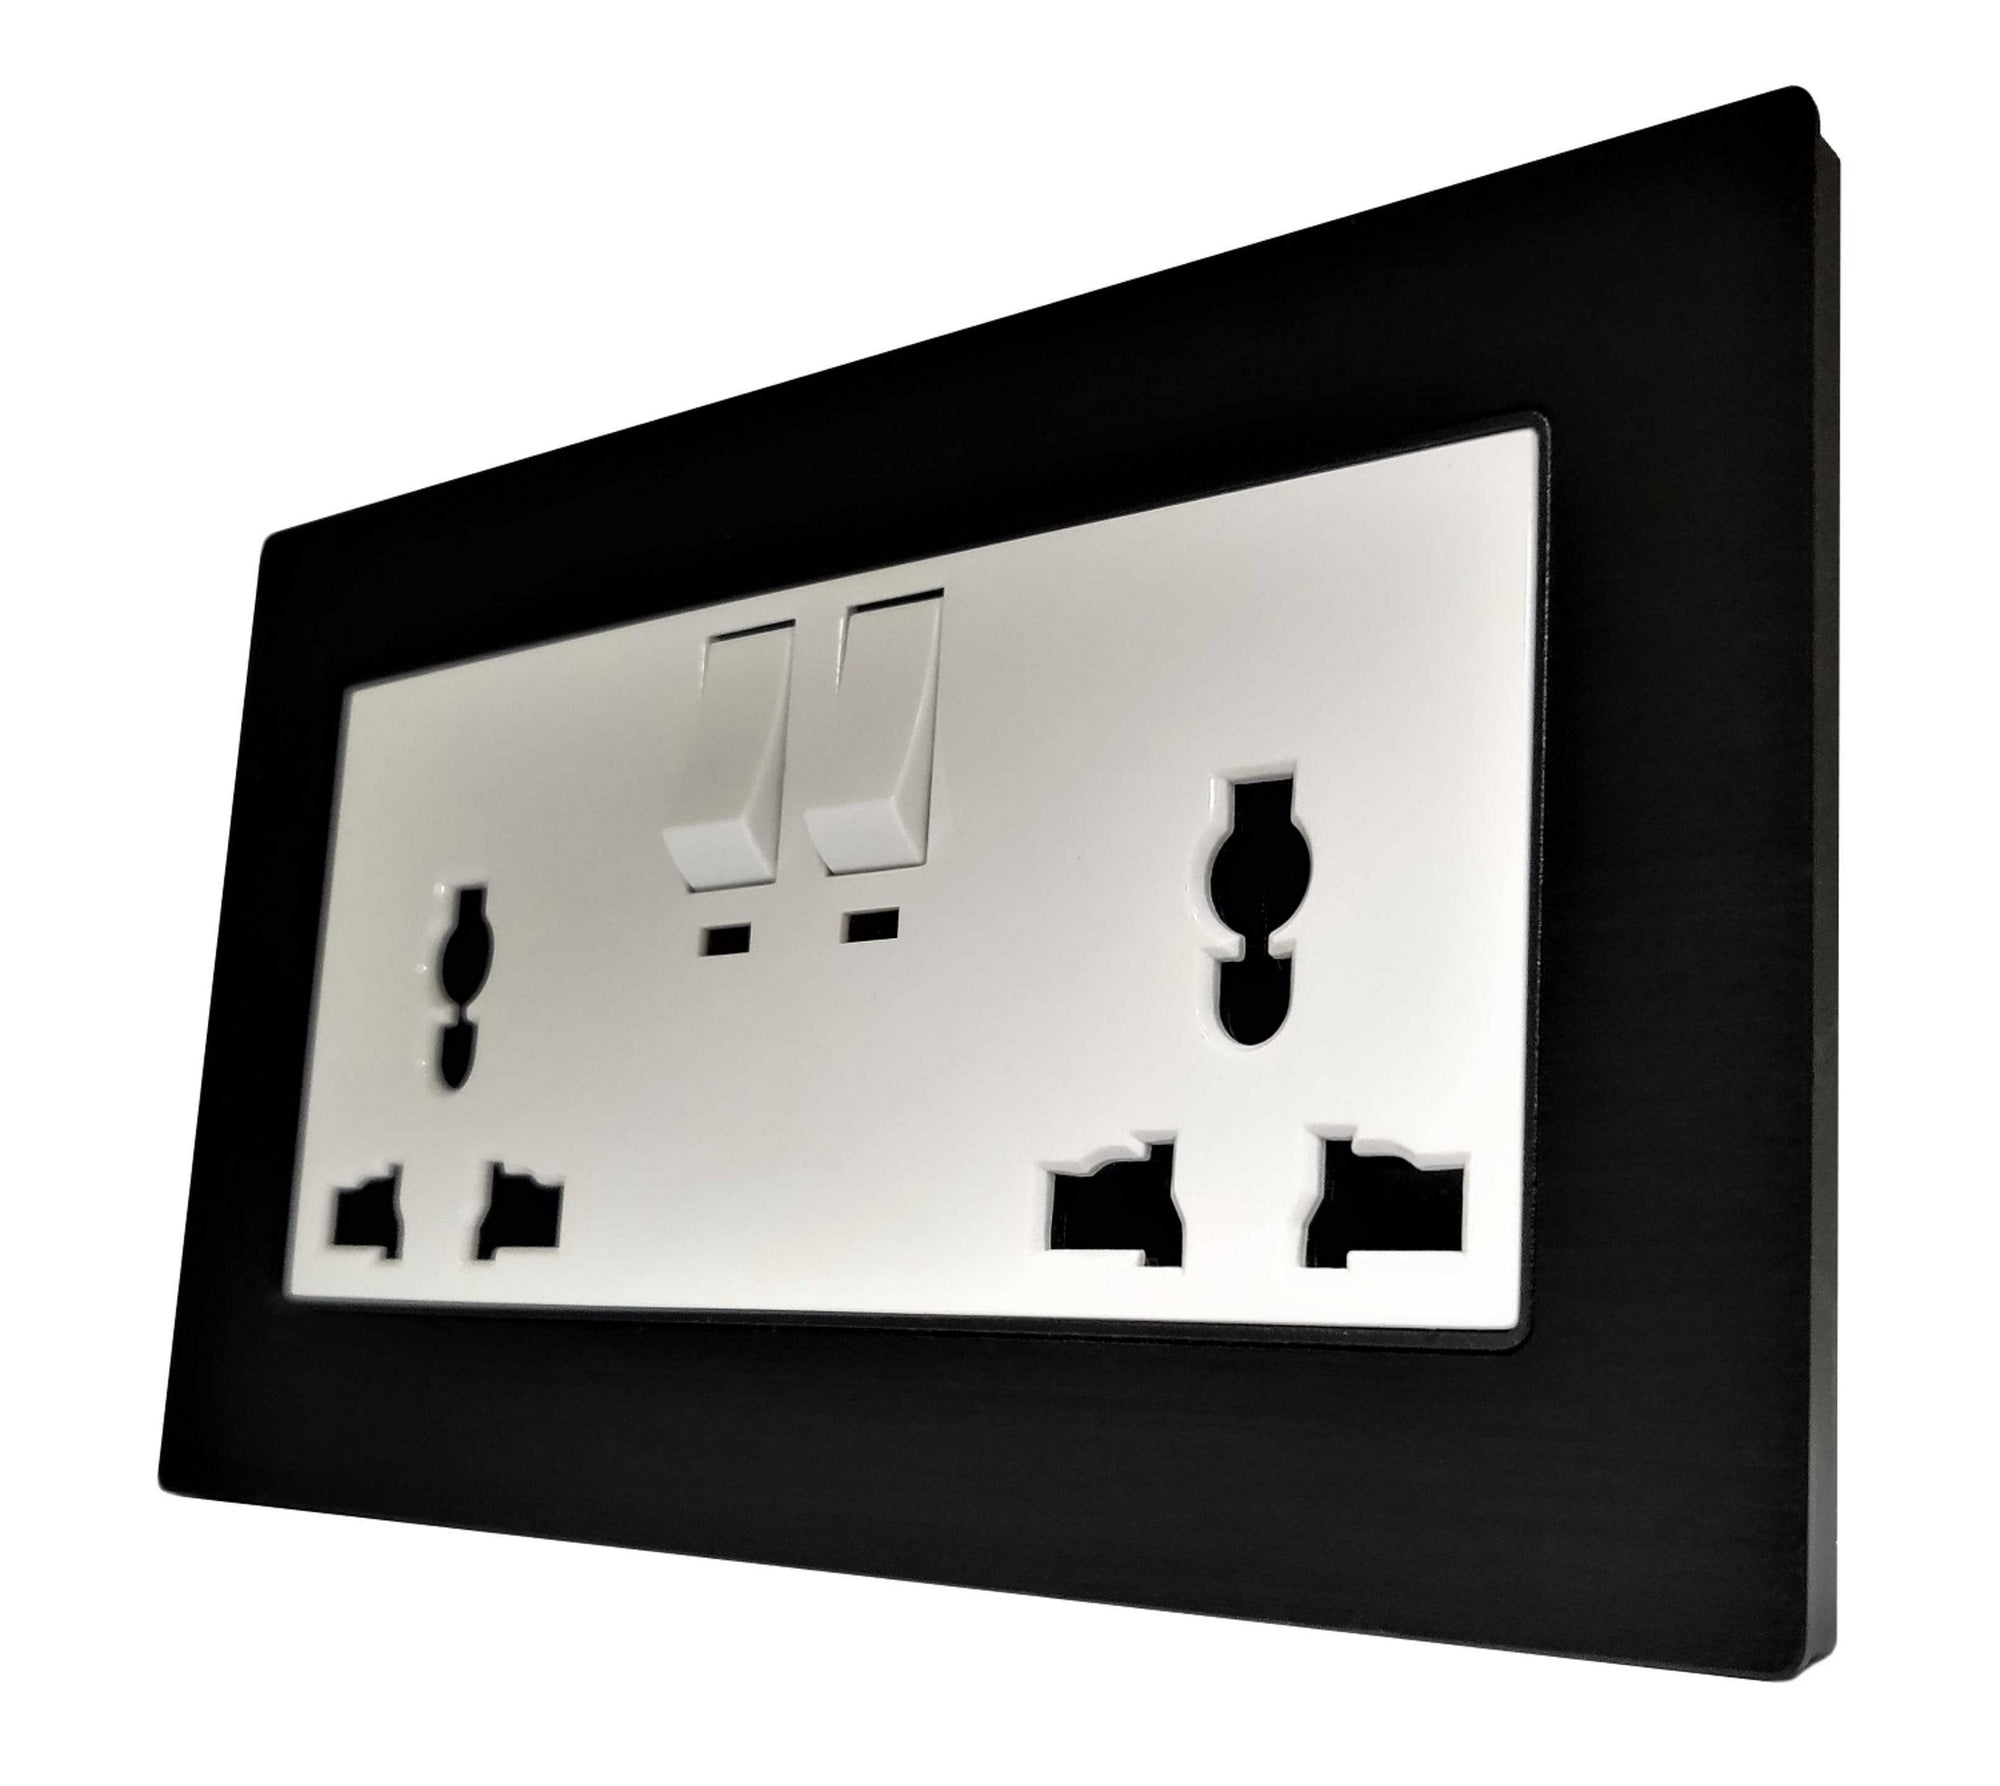 Double Universal Multi-Function AC Wall Power Socket in Black Brushed Alum Frame & White Centre